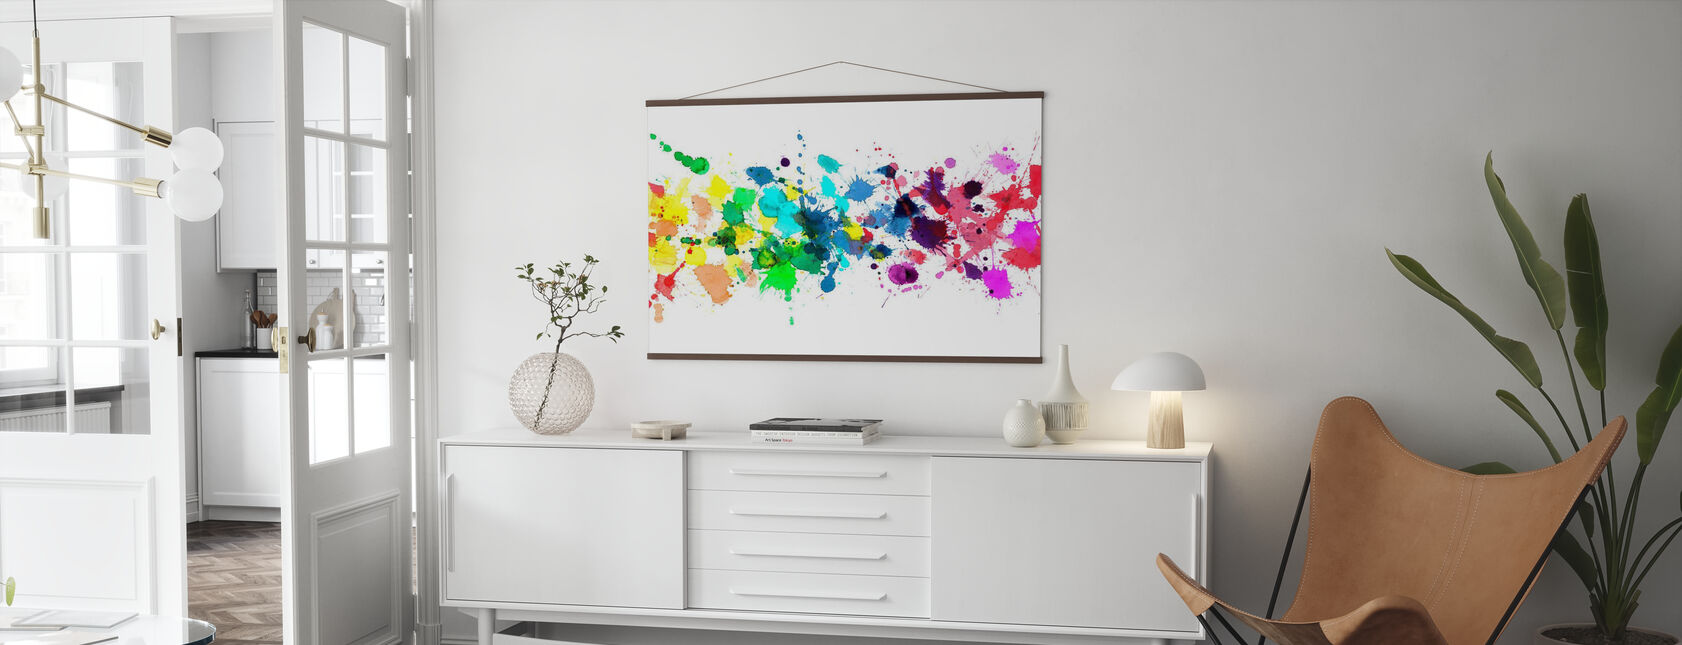 Watercolour Rainbow - Poster - Living Room